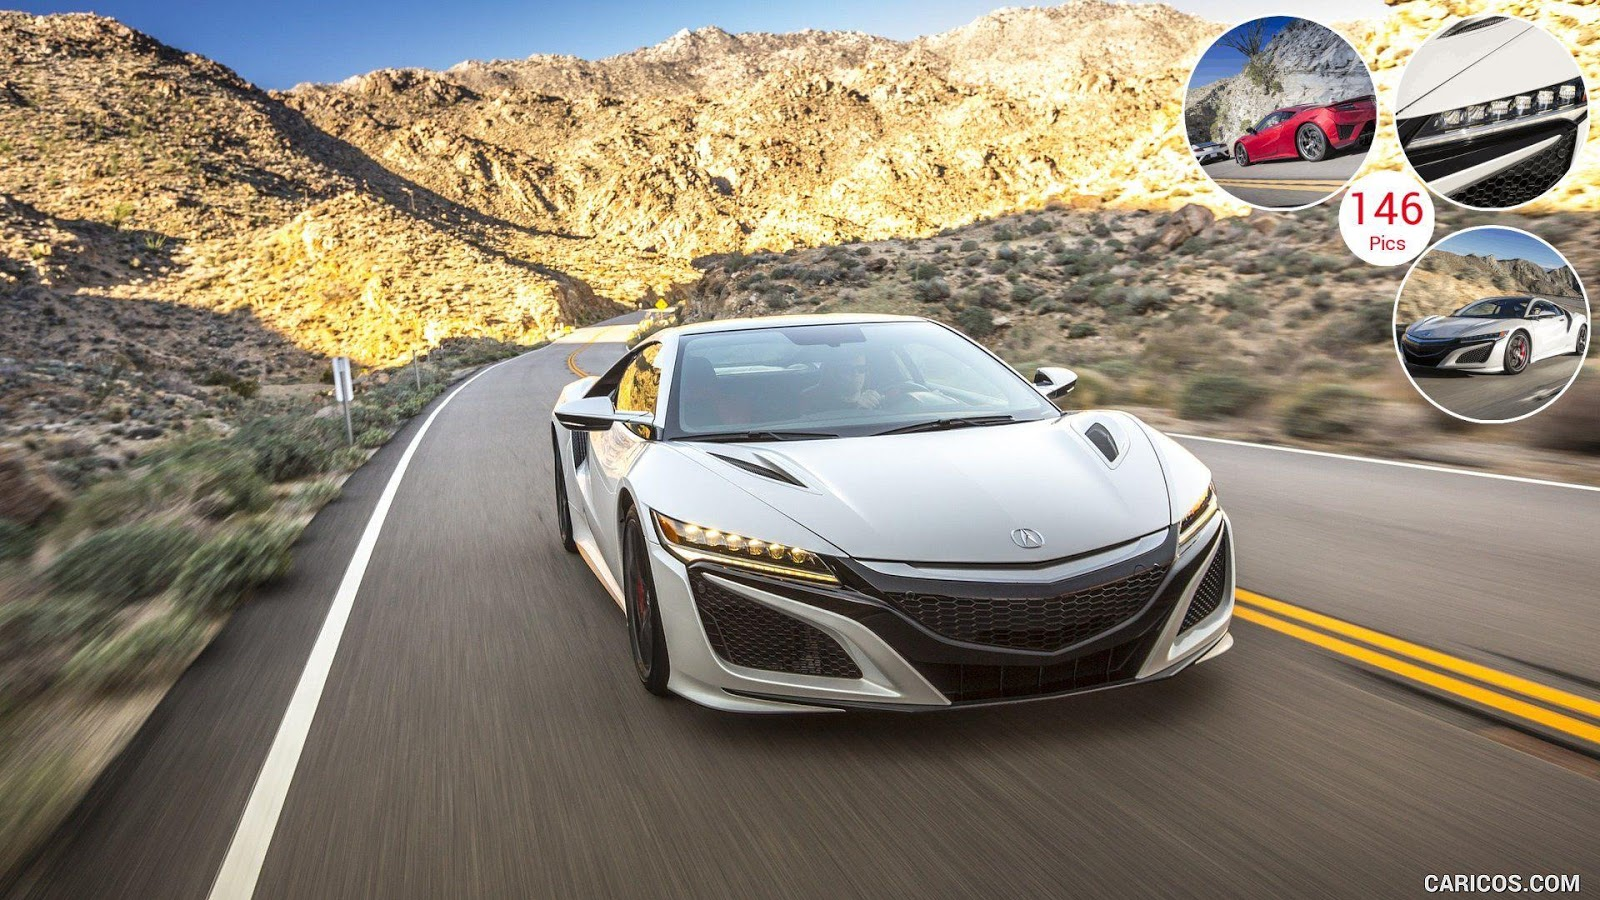 2017 Acura NSX White cars